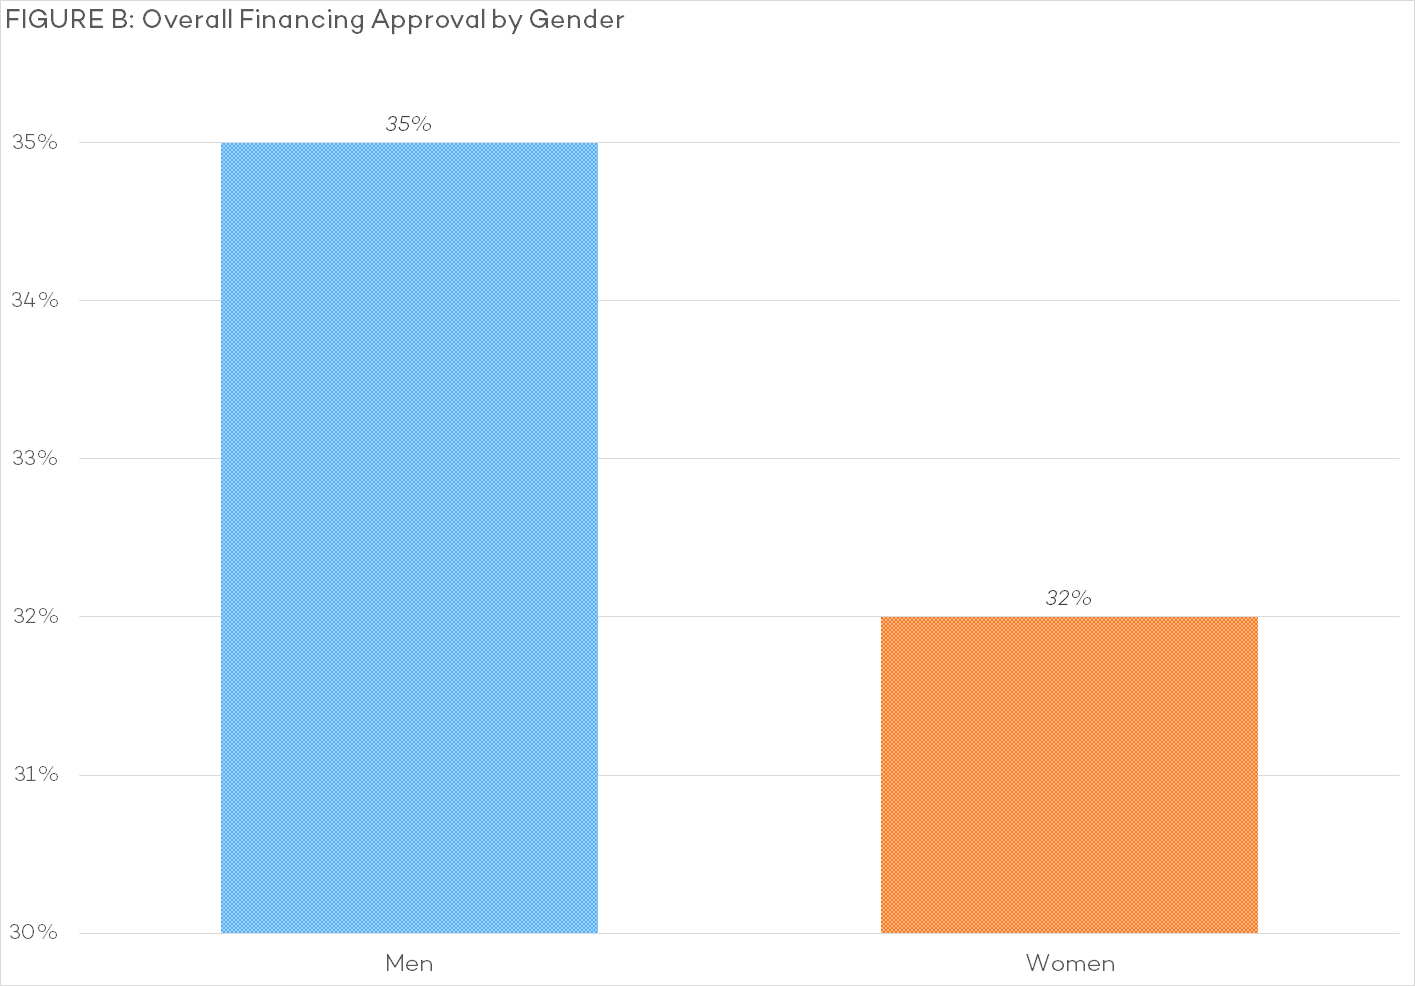 B - Overall Financing Approval by Gender